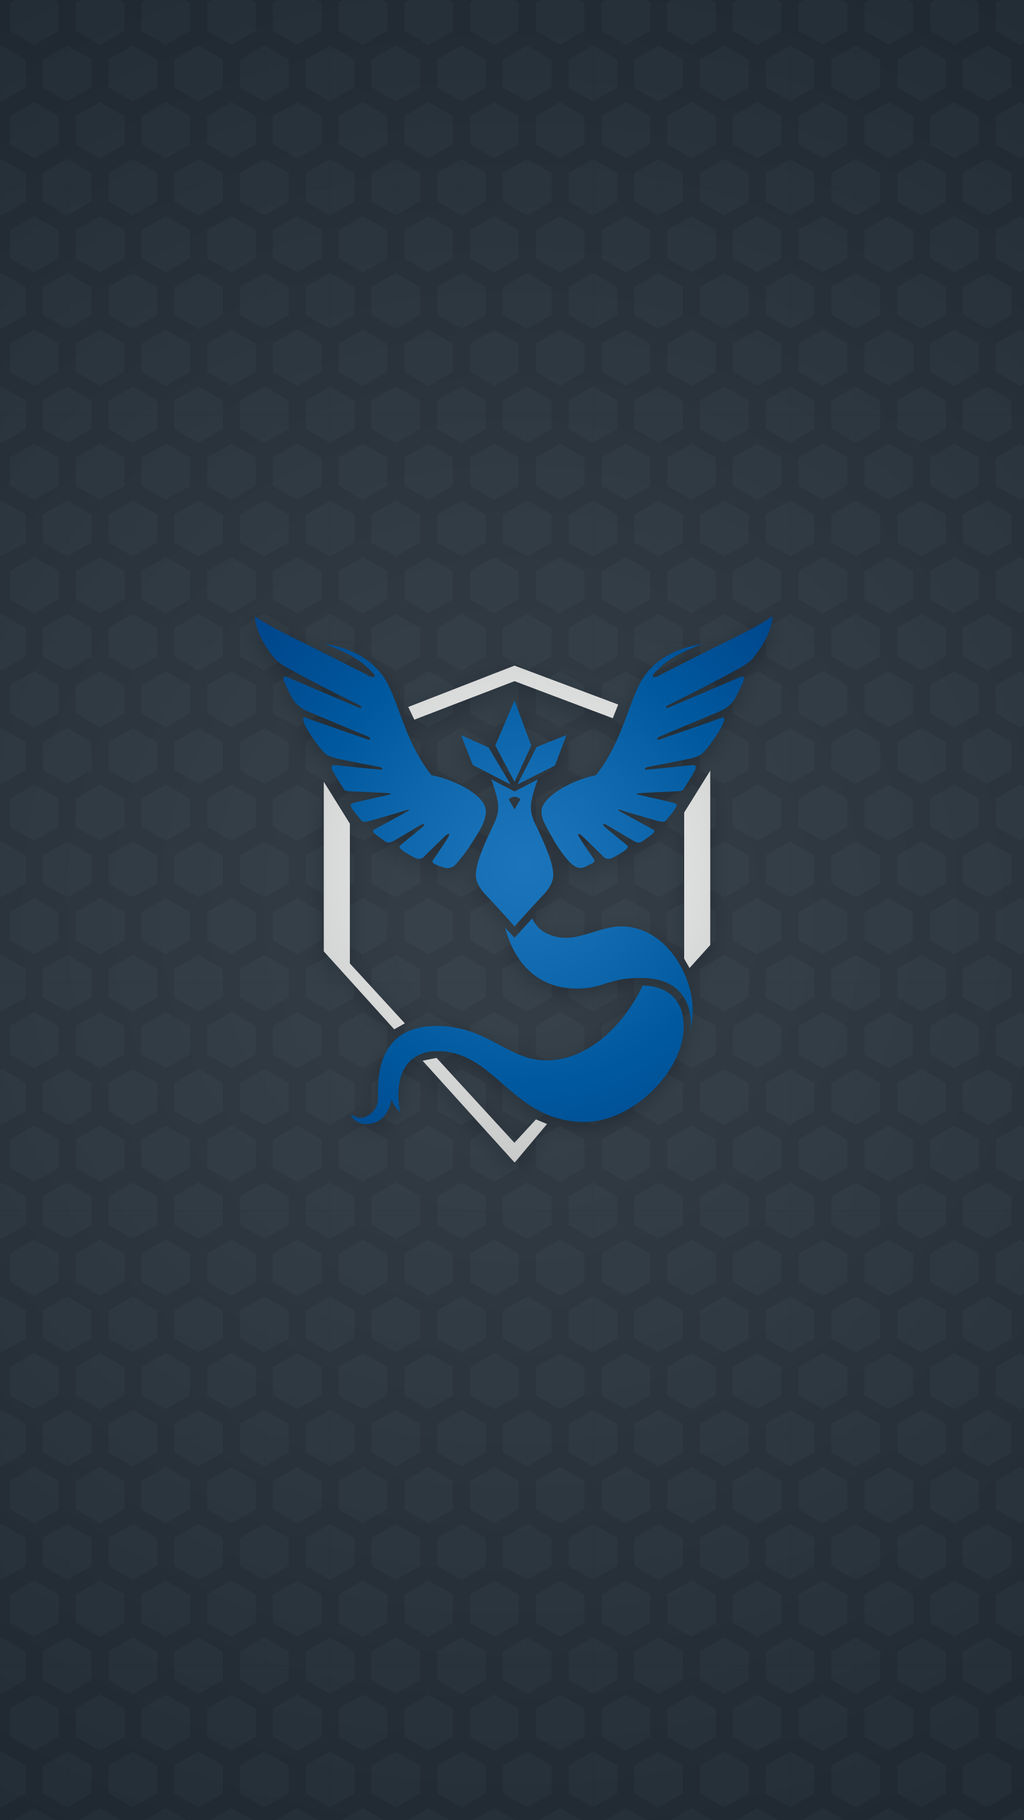 Pokemon Go Team Mystic Patterned Wallpaper By Interestingjohn On